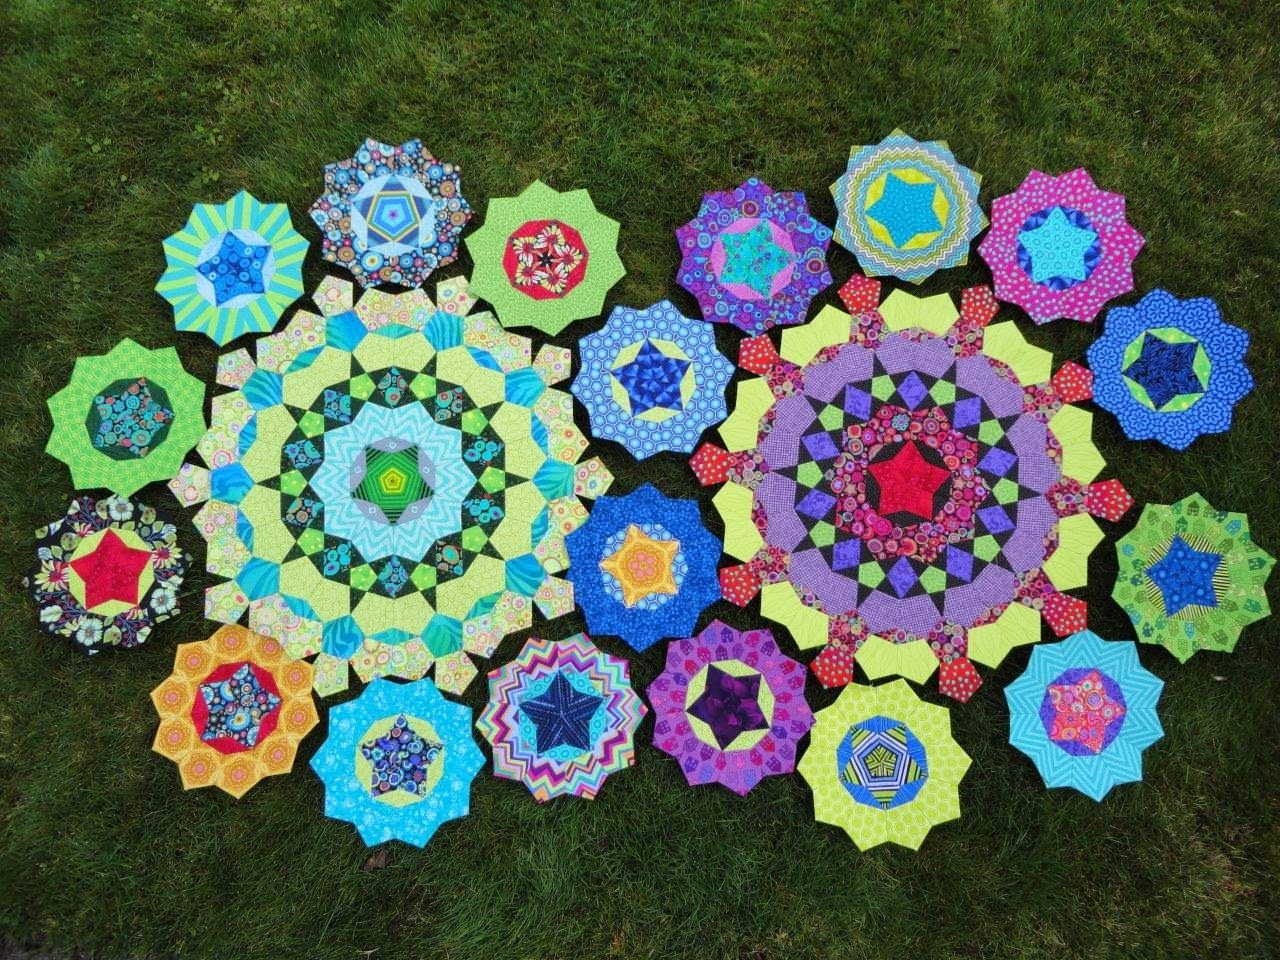 Wendy's quilts and more: La passacaglia update